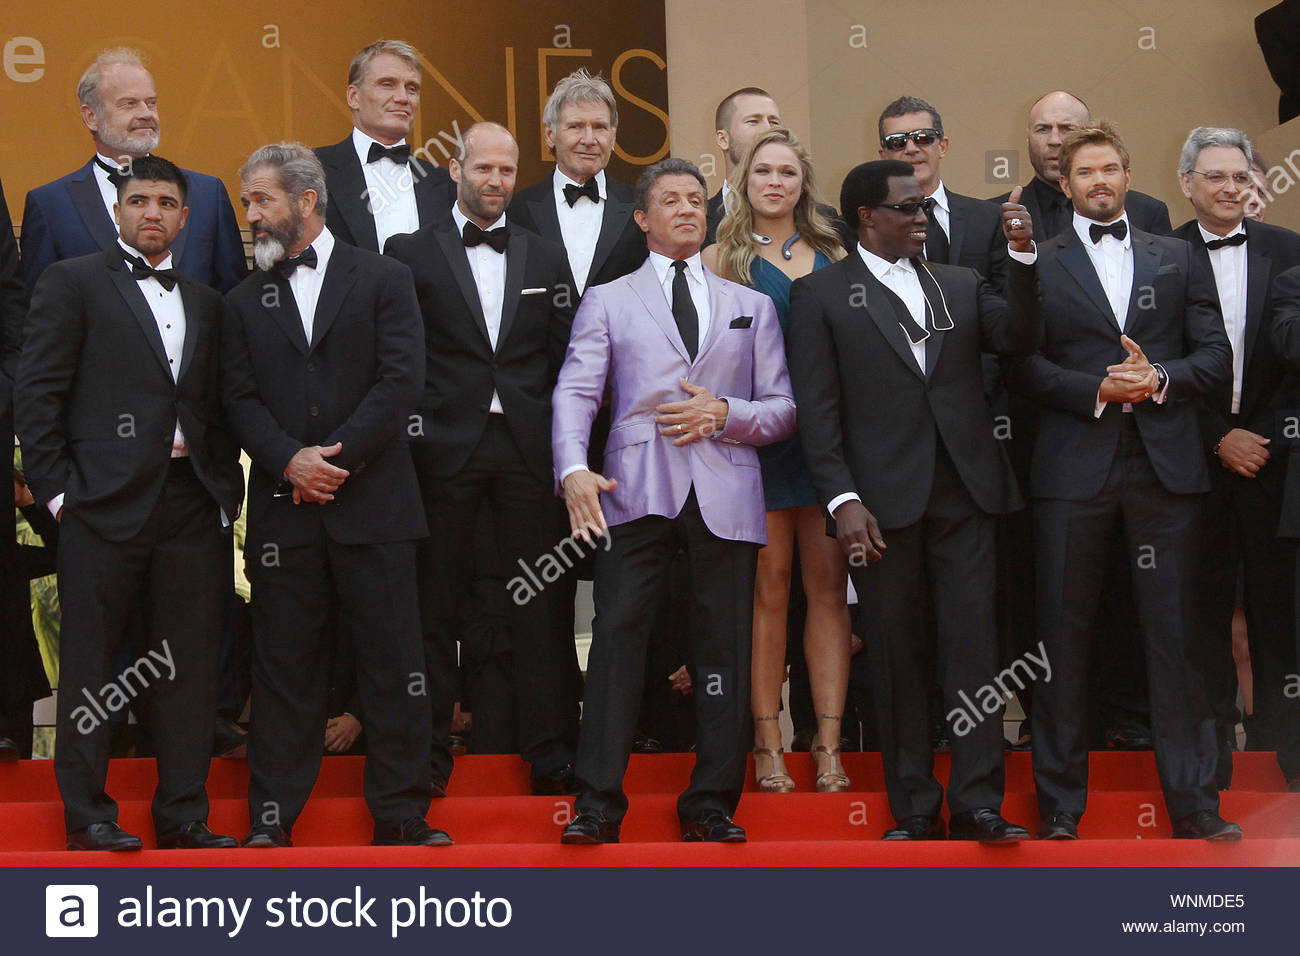 """Cannes, France - The cast of """"Expendables 3"""" at """"The Homesman"""" premiere, during the 67th Annual Cannes Film Festival. AKM-GSI May 18, 2014 Stock Photo"""